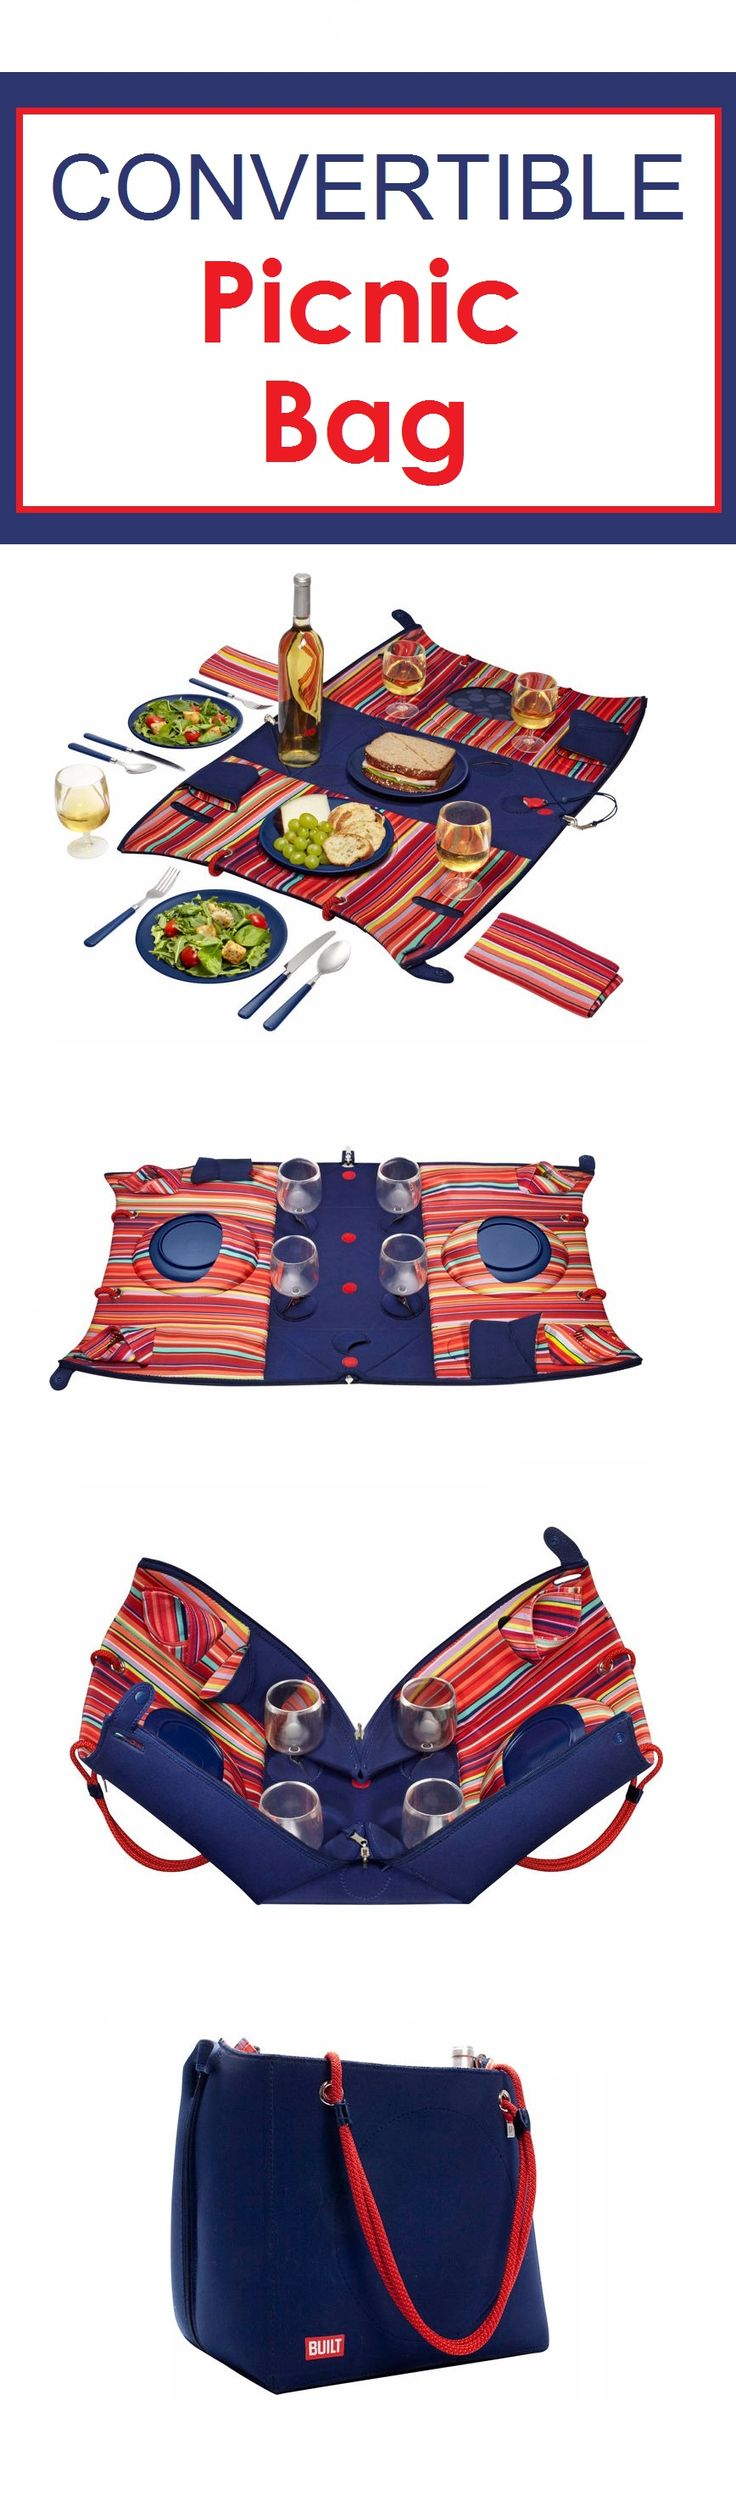 Bring this Convertible Picnic Bag to the park, the beach, or enjoying a backyard BBQ. This bag has everything you need to make entertaining a breeze. This compact bag includes wine glasses, plates, flatware, a corkscrew, a bottle opener, and napkins for a party of 4. Plus, there's even a place to keep wine bottles secure.